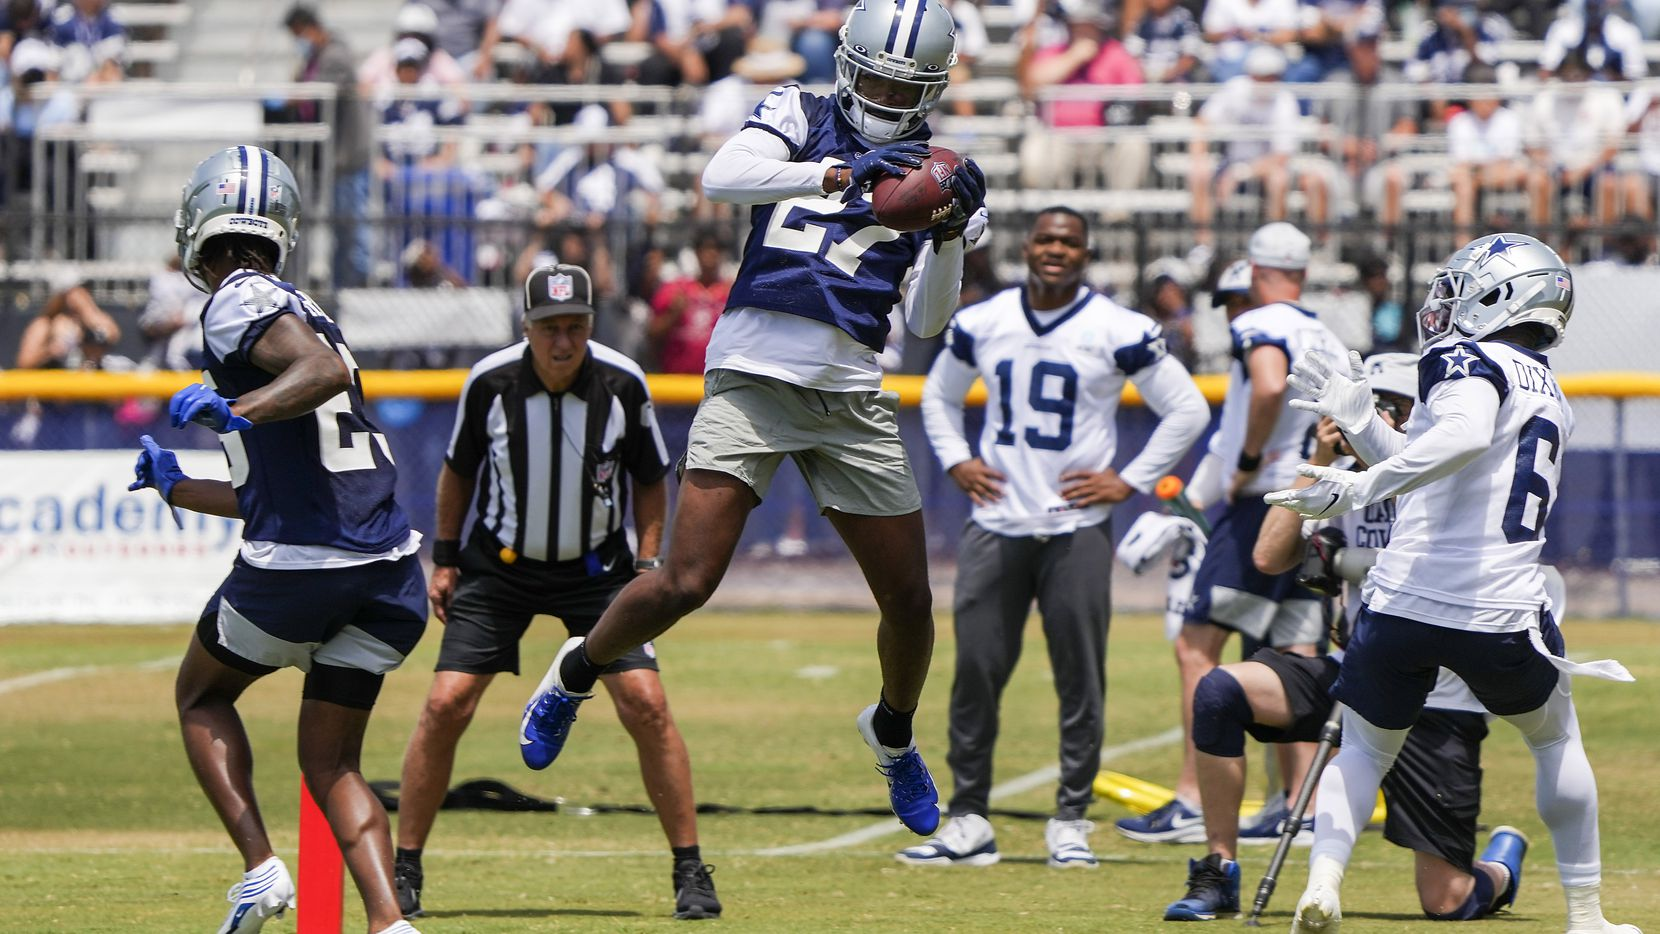 Dallas Cowboys cornerback Trevon Diggs (27) intercepts a pass intended for wide receiver Johnnie Dixon (6) in the end zone during a practice at training camp on Tuesday, July 27, 2021, in Oxnard, Calif.